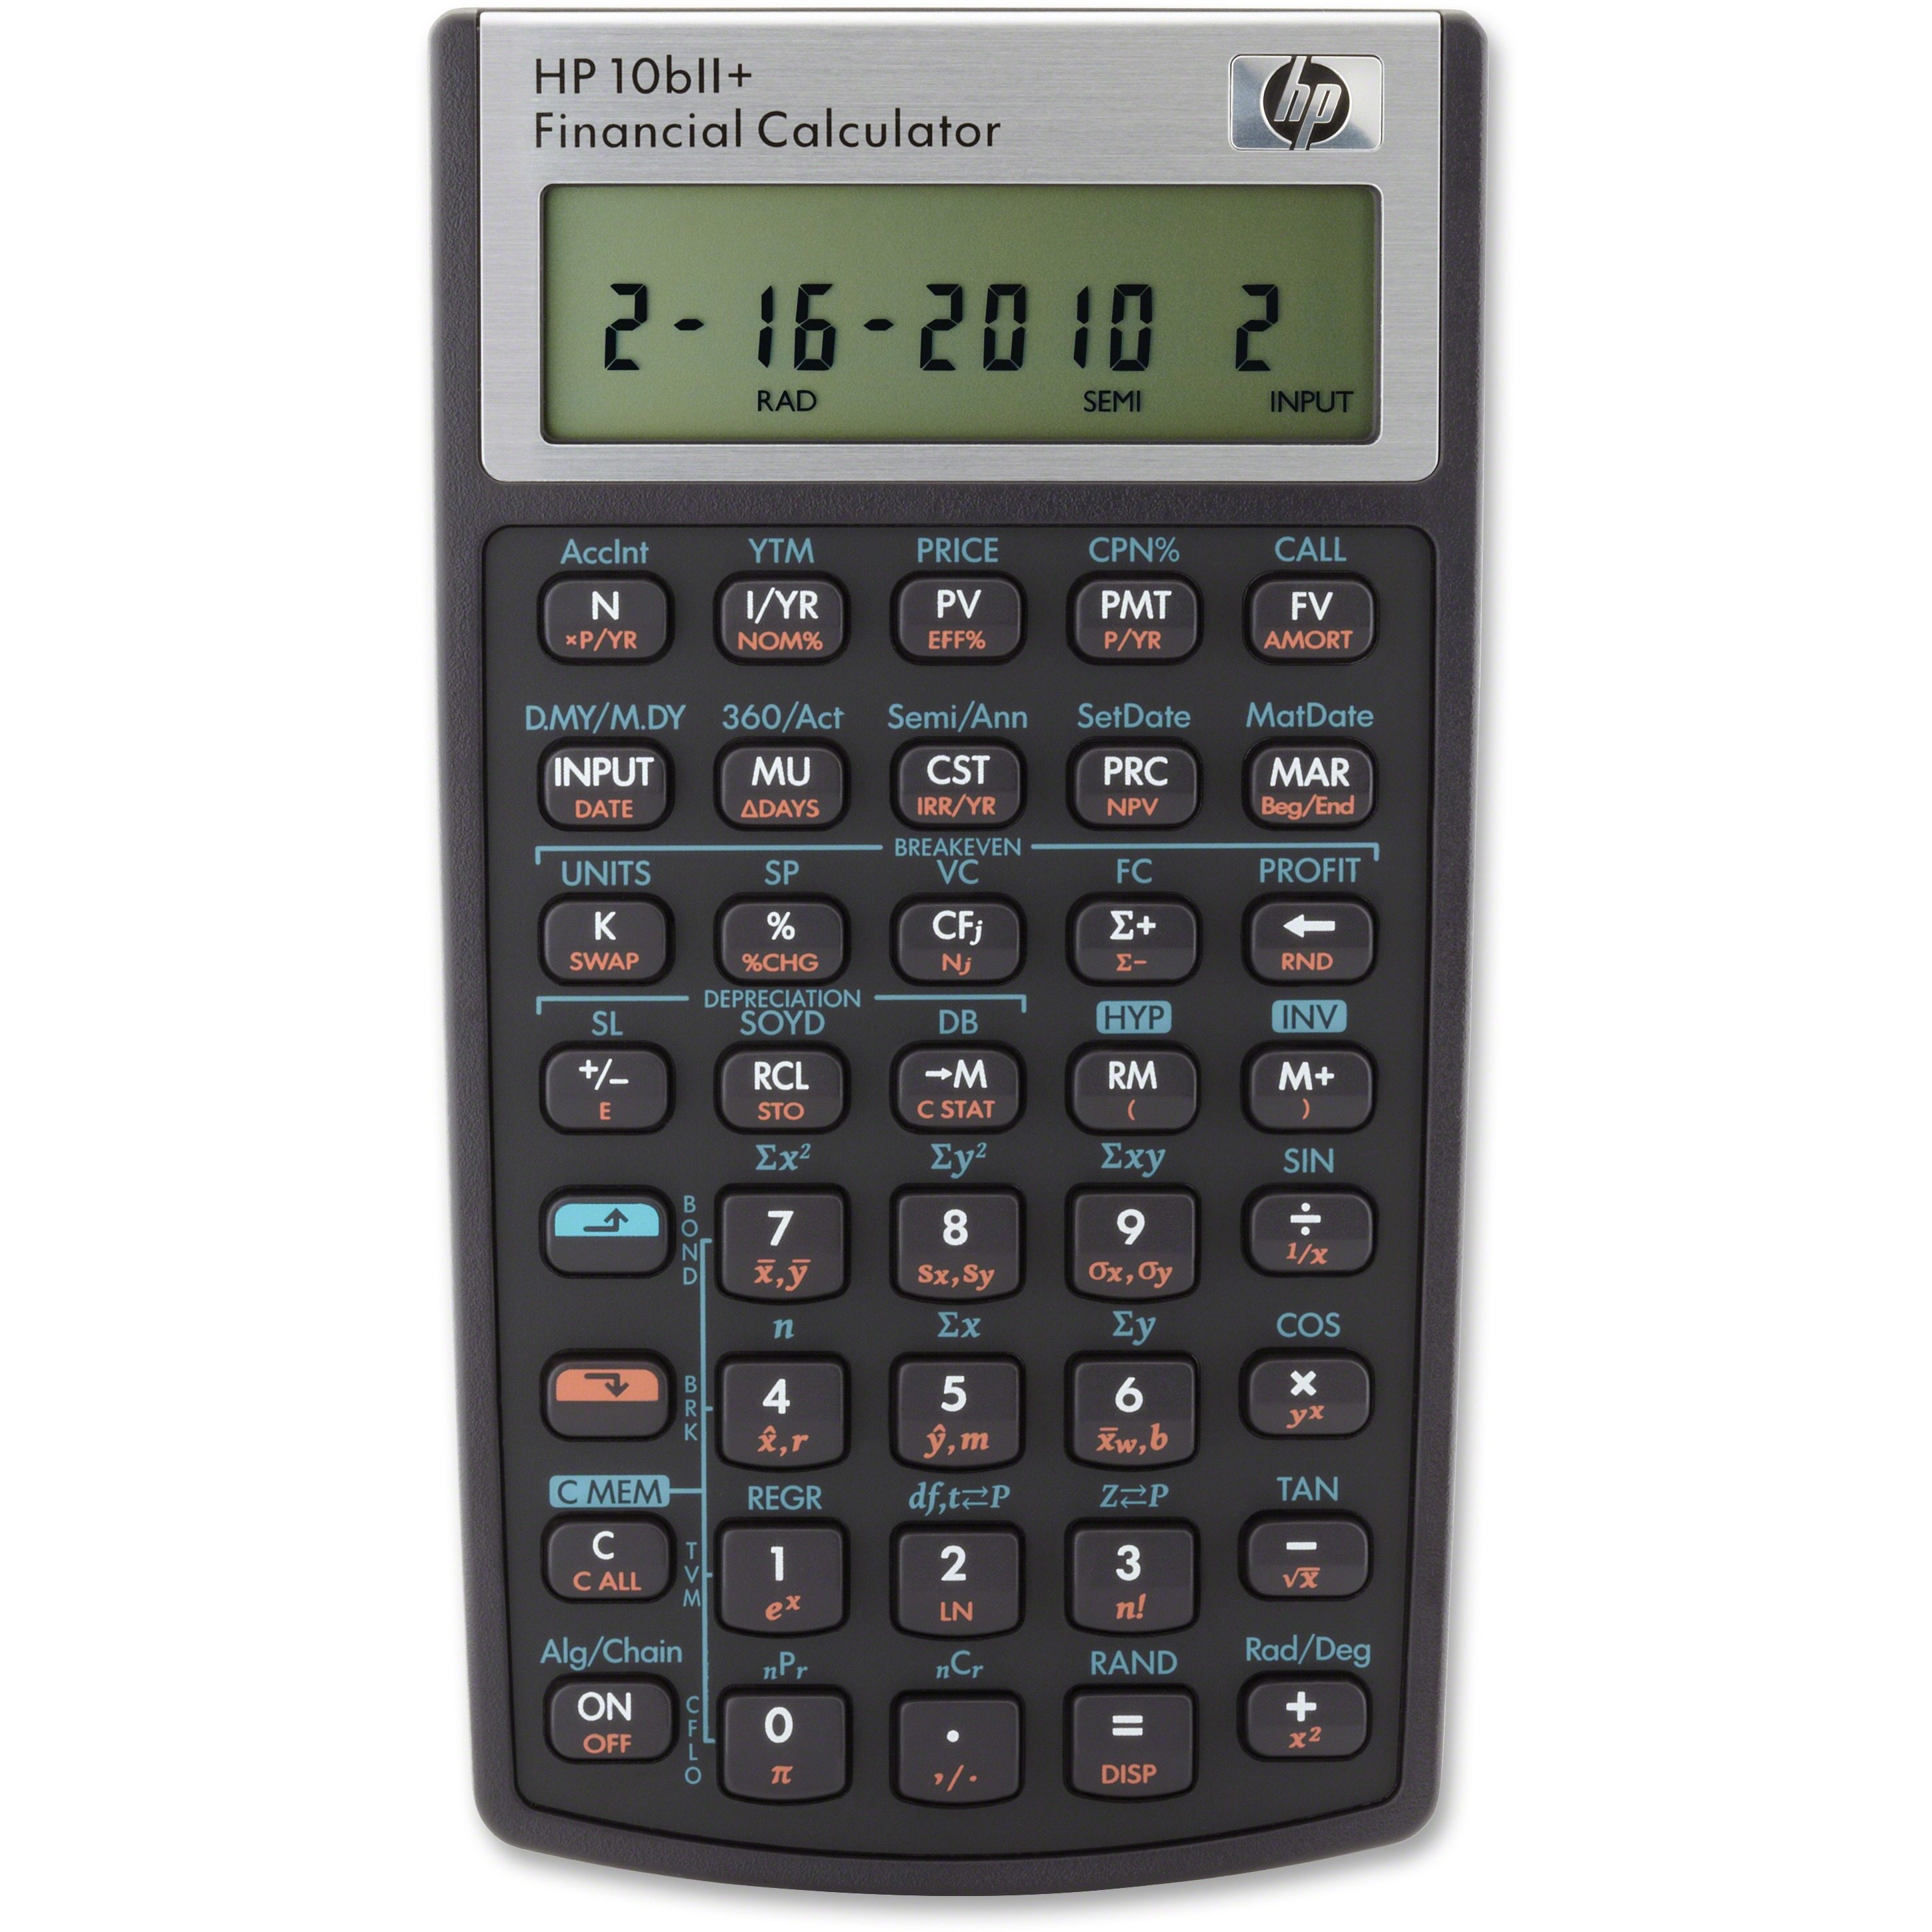 HP 10BIIPlus Financial Calculator, 1 Each (Quantity)